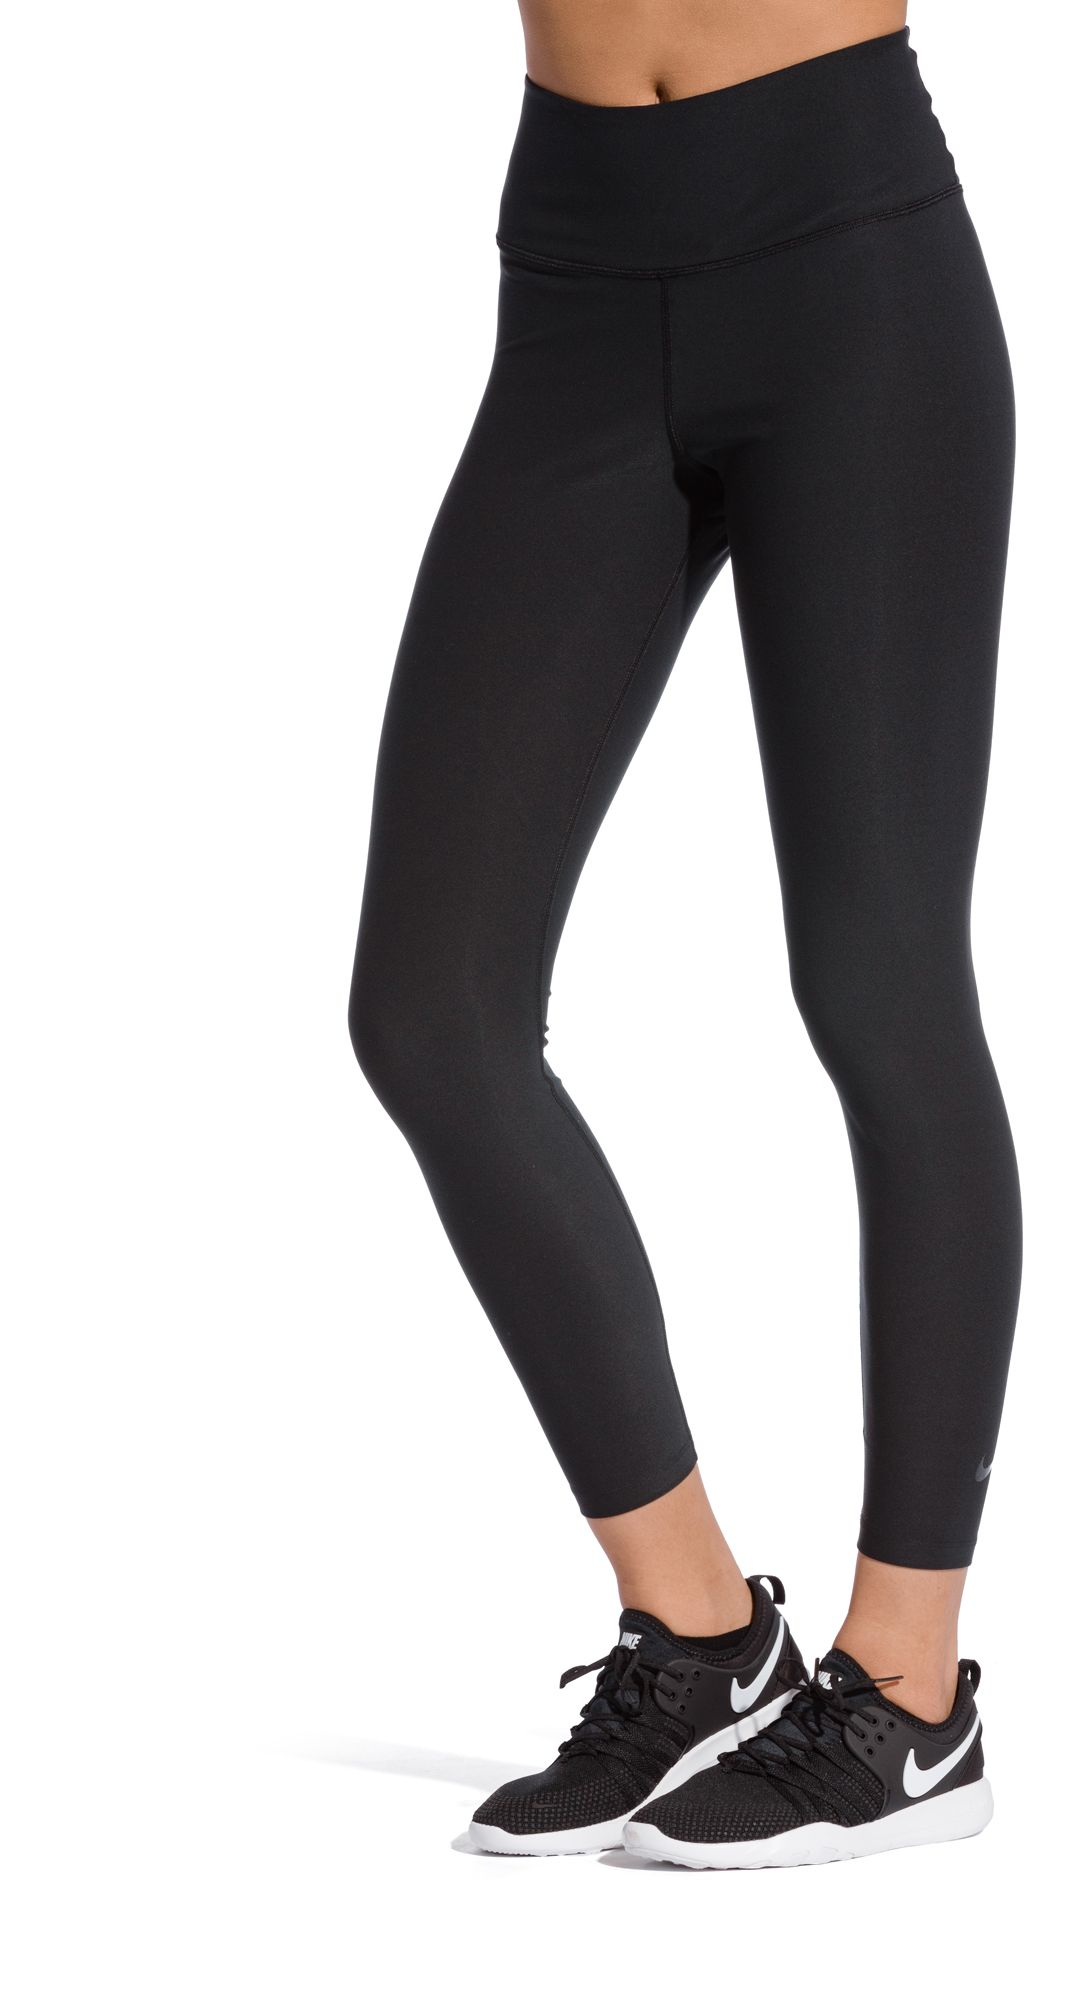 best quality authorized site new arrivals Nike Women's Sculpt Hyper Tights